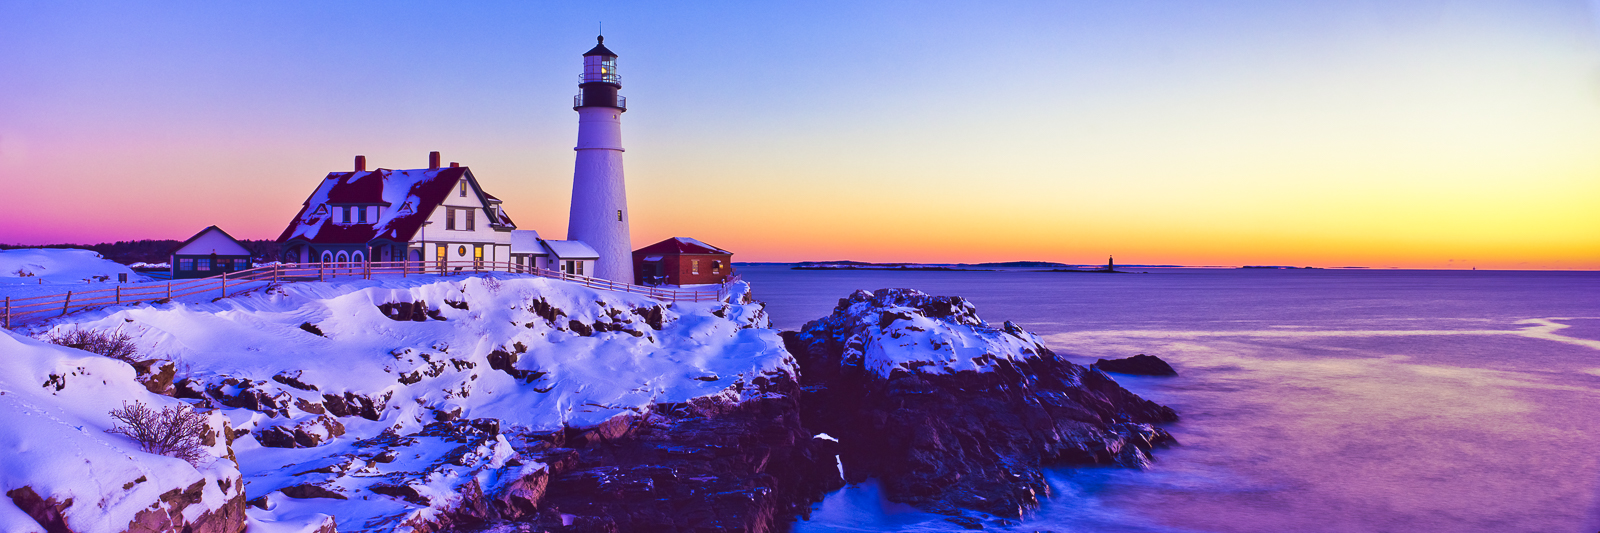 Horizontal,Maine,Panoramic,Pemaquid Point Lighthouse,landscape,Morning Lights,Cape Elizabeth,Frozen Winter,Portland,Bright eye, photo